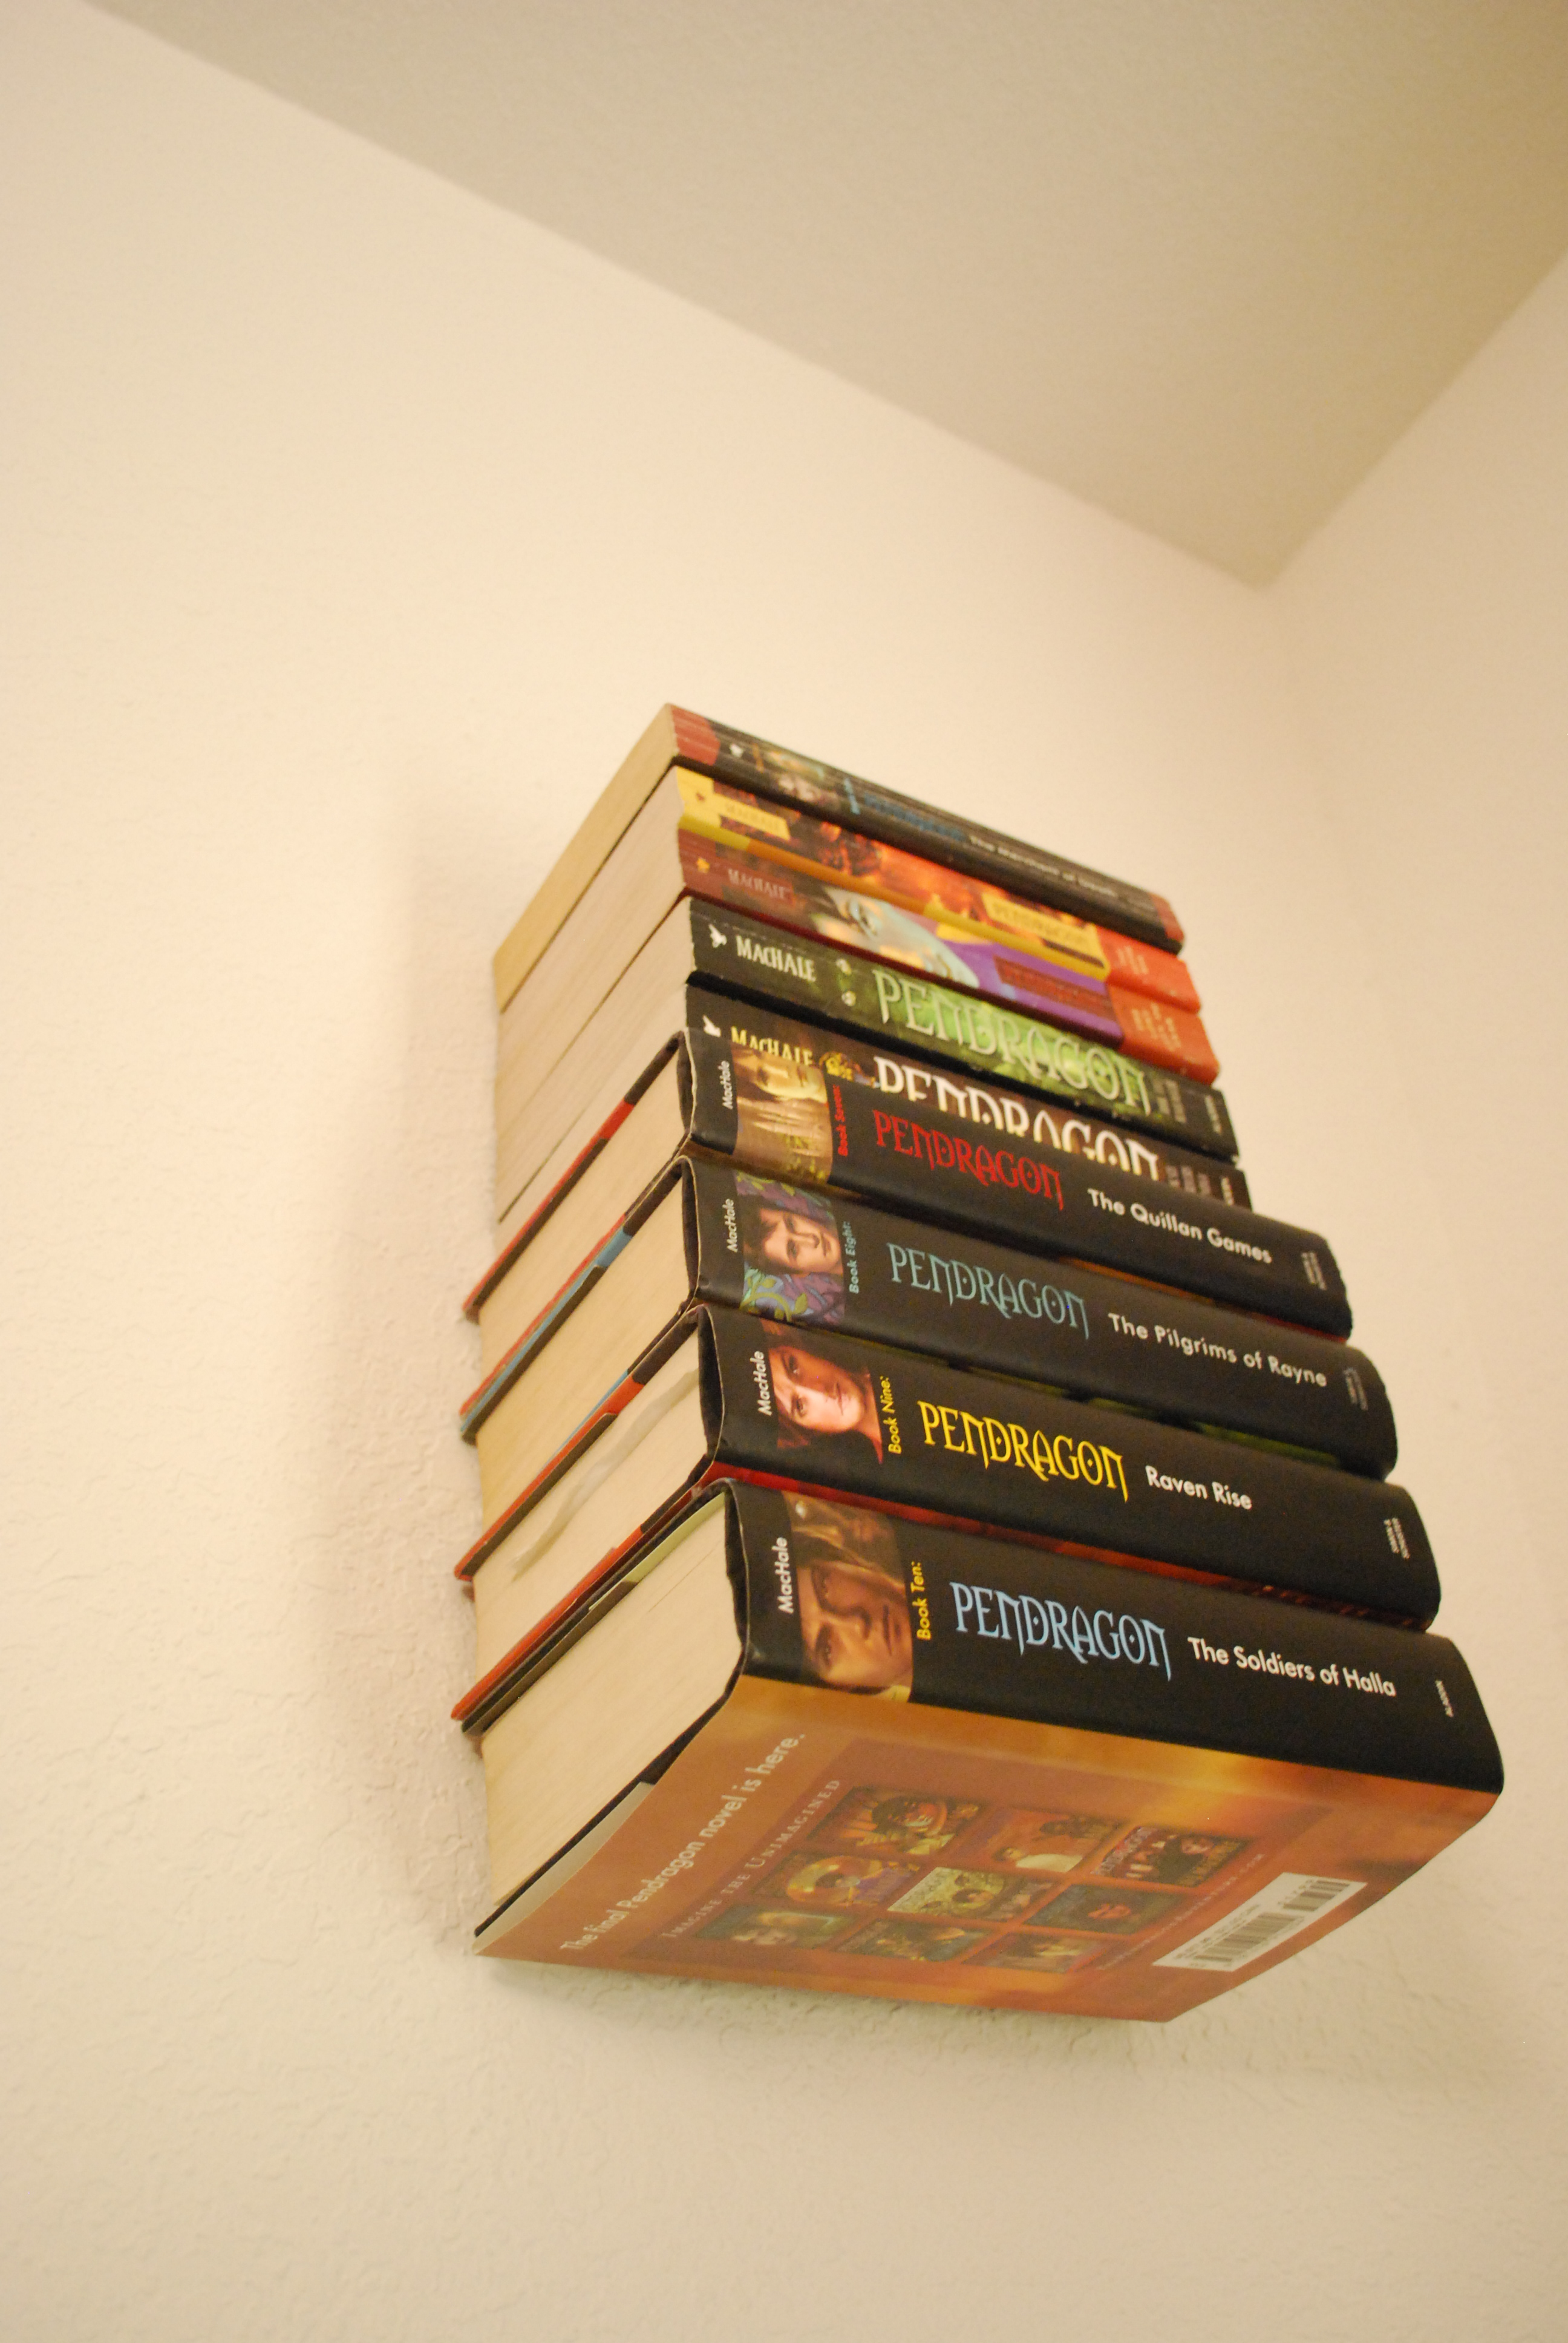 How To Make An Invisible Bookshelf (Without Ruining A Book!)